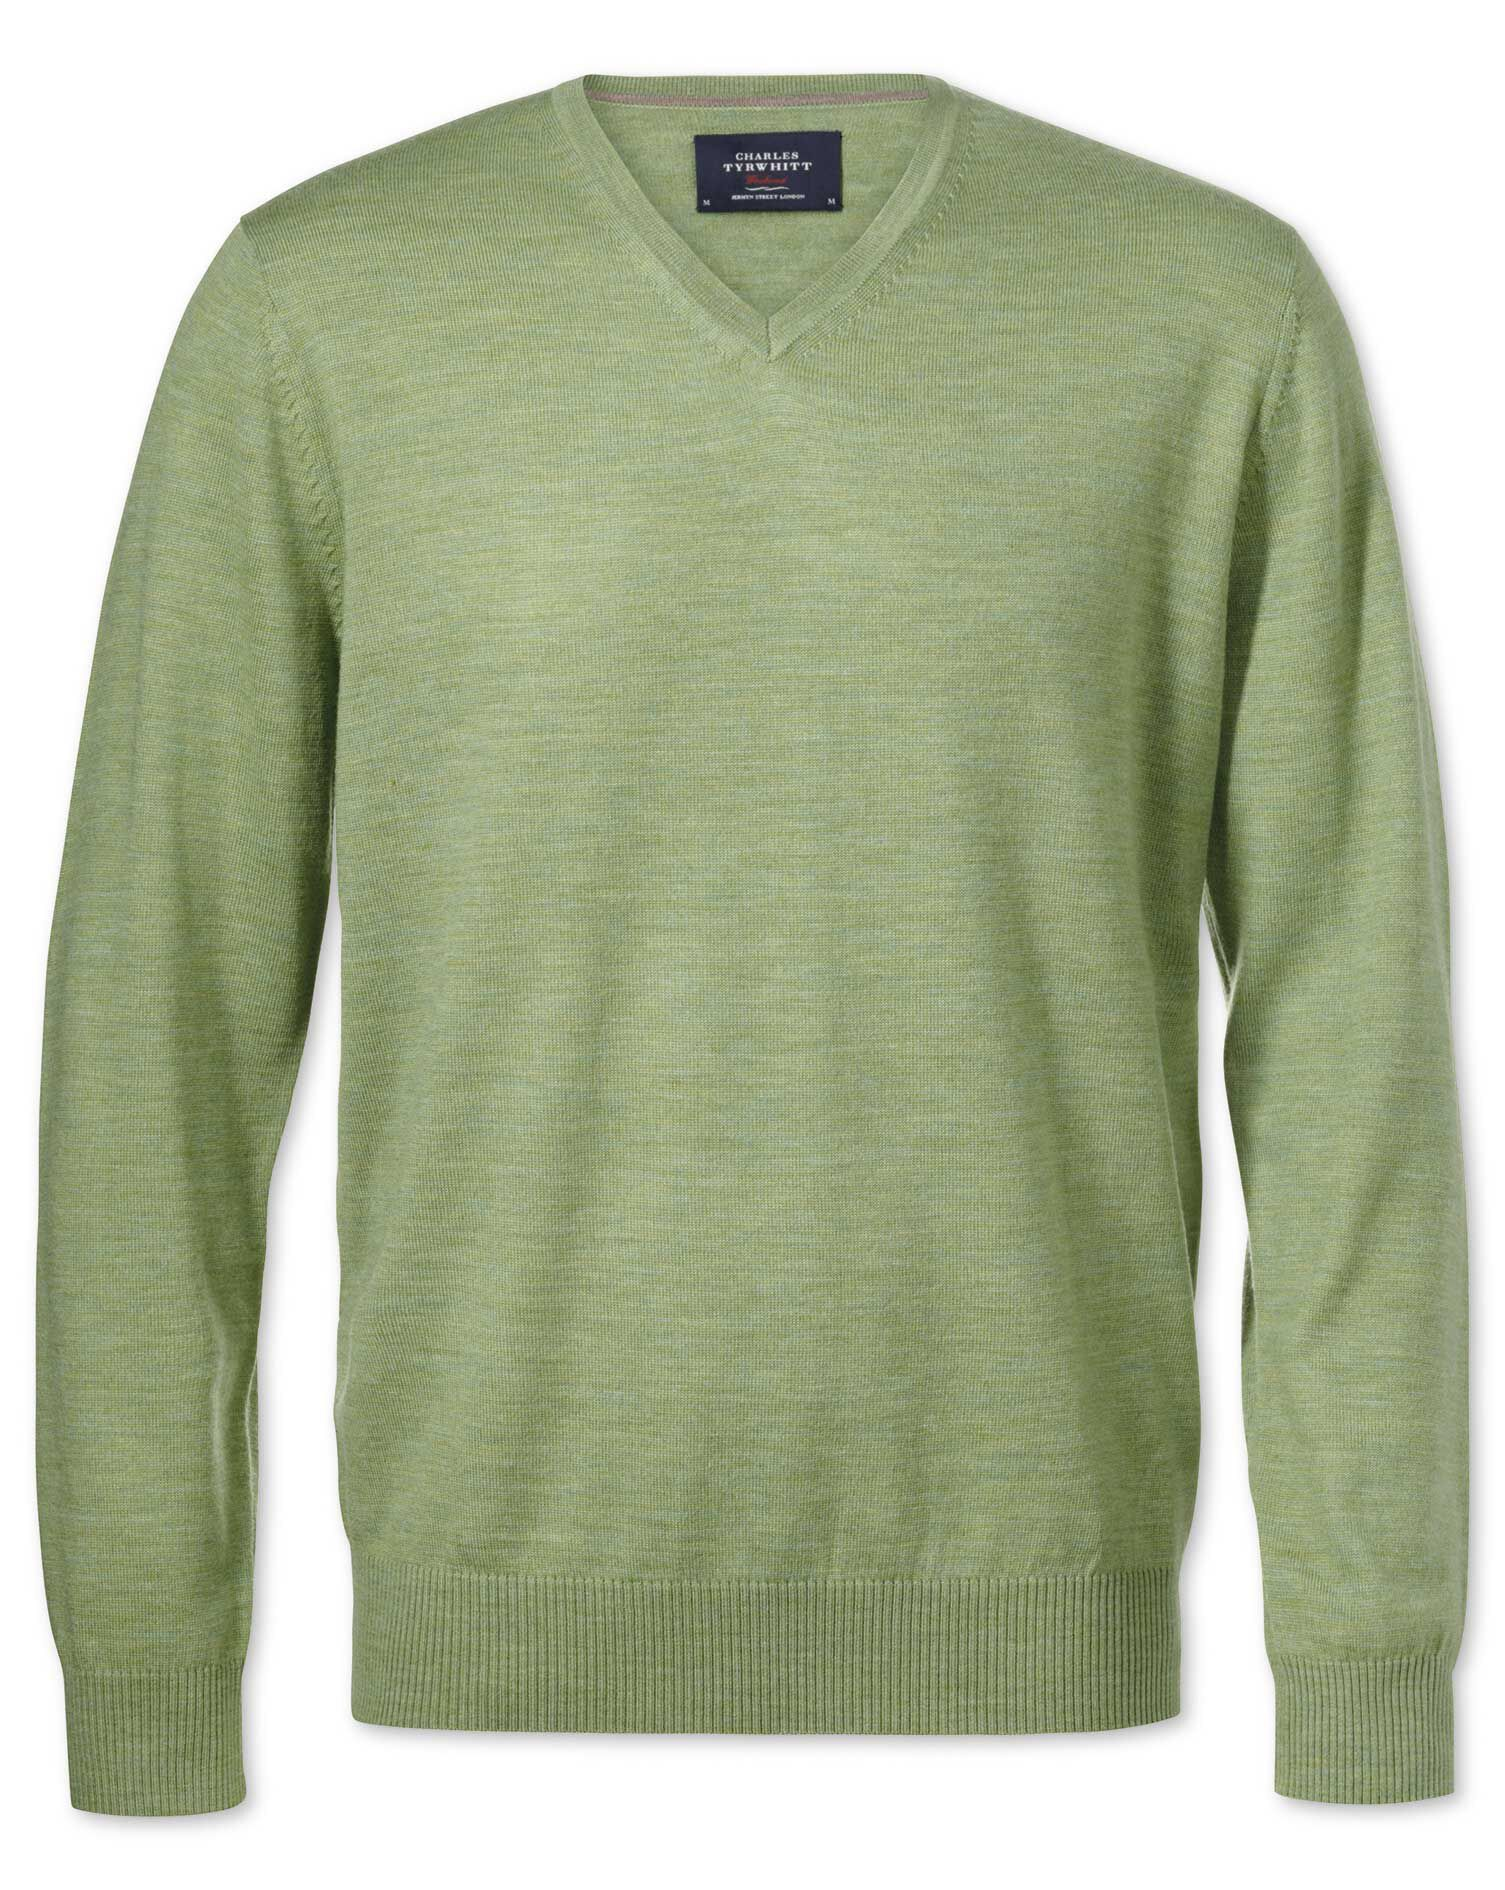 Light Green Merino Wool V-Neck Jumper Size Small by Charles Tyrwhitt